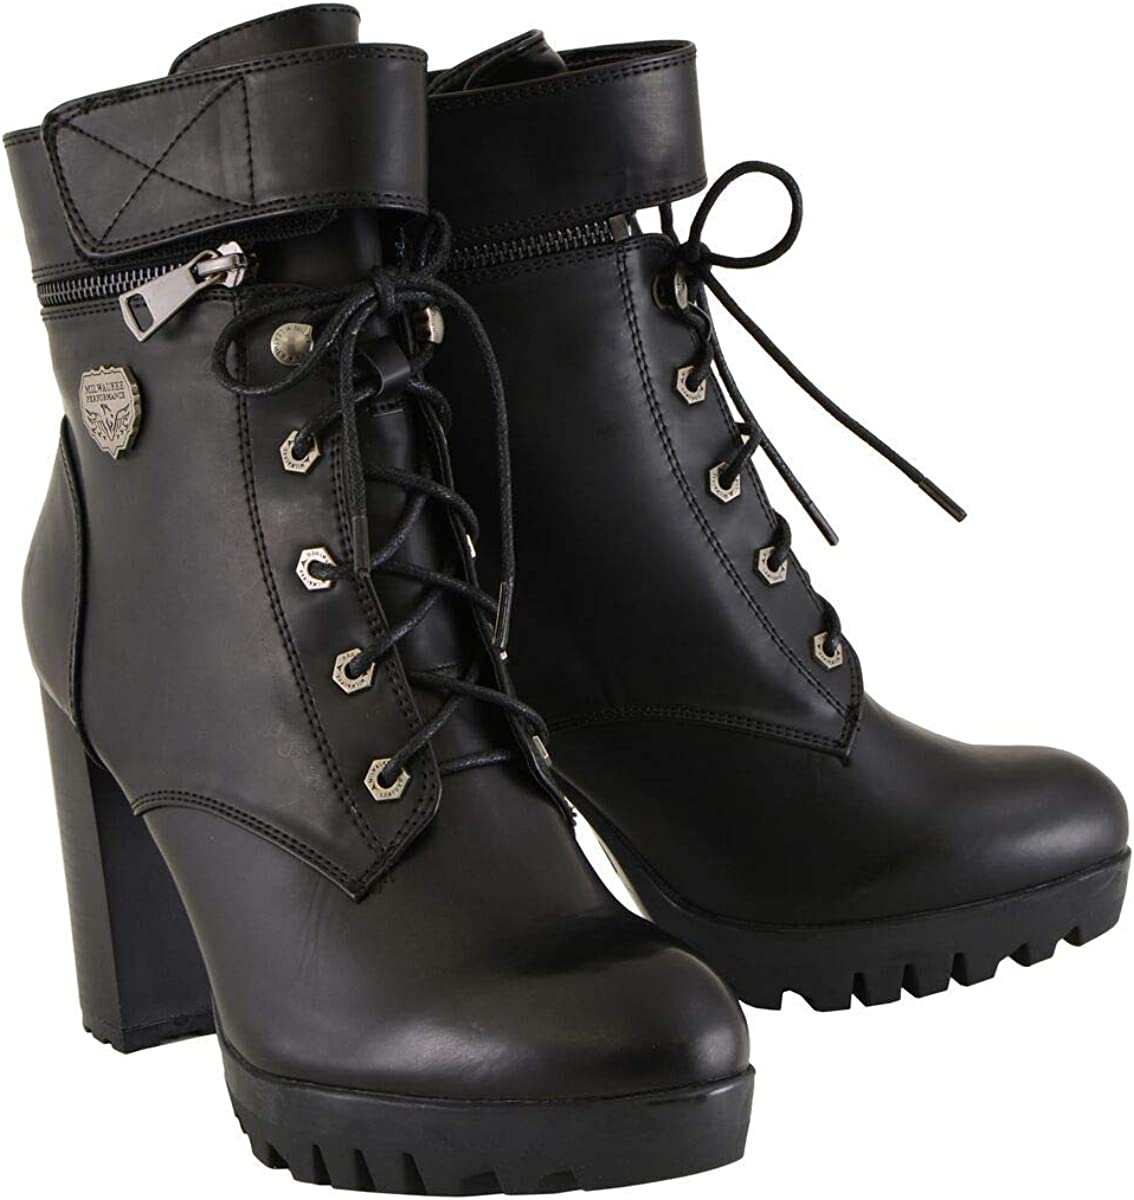 Milwaukee Leather MBL9425 Women's Black Lace-Up Boots with Double Height Option